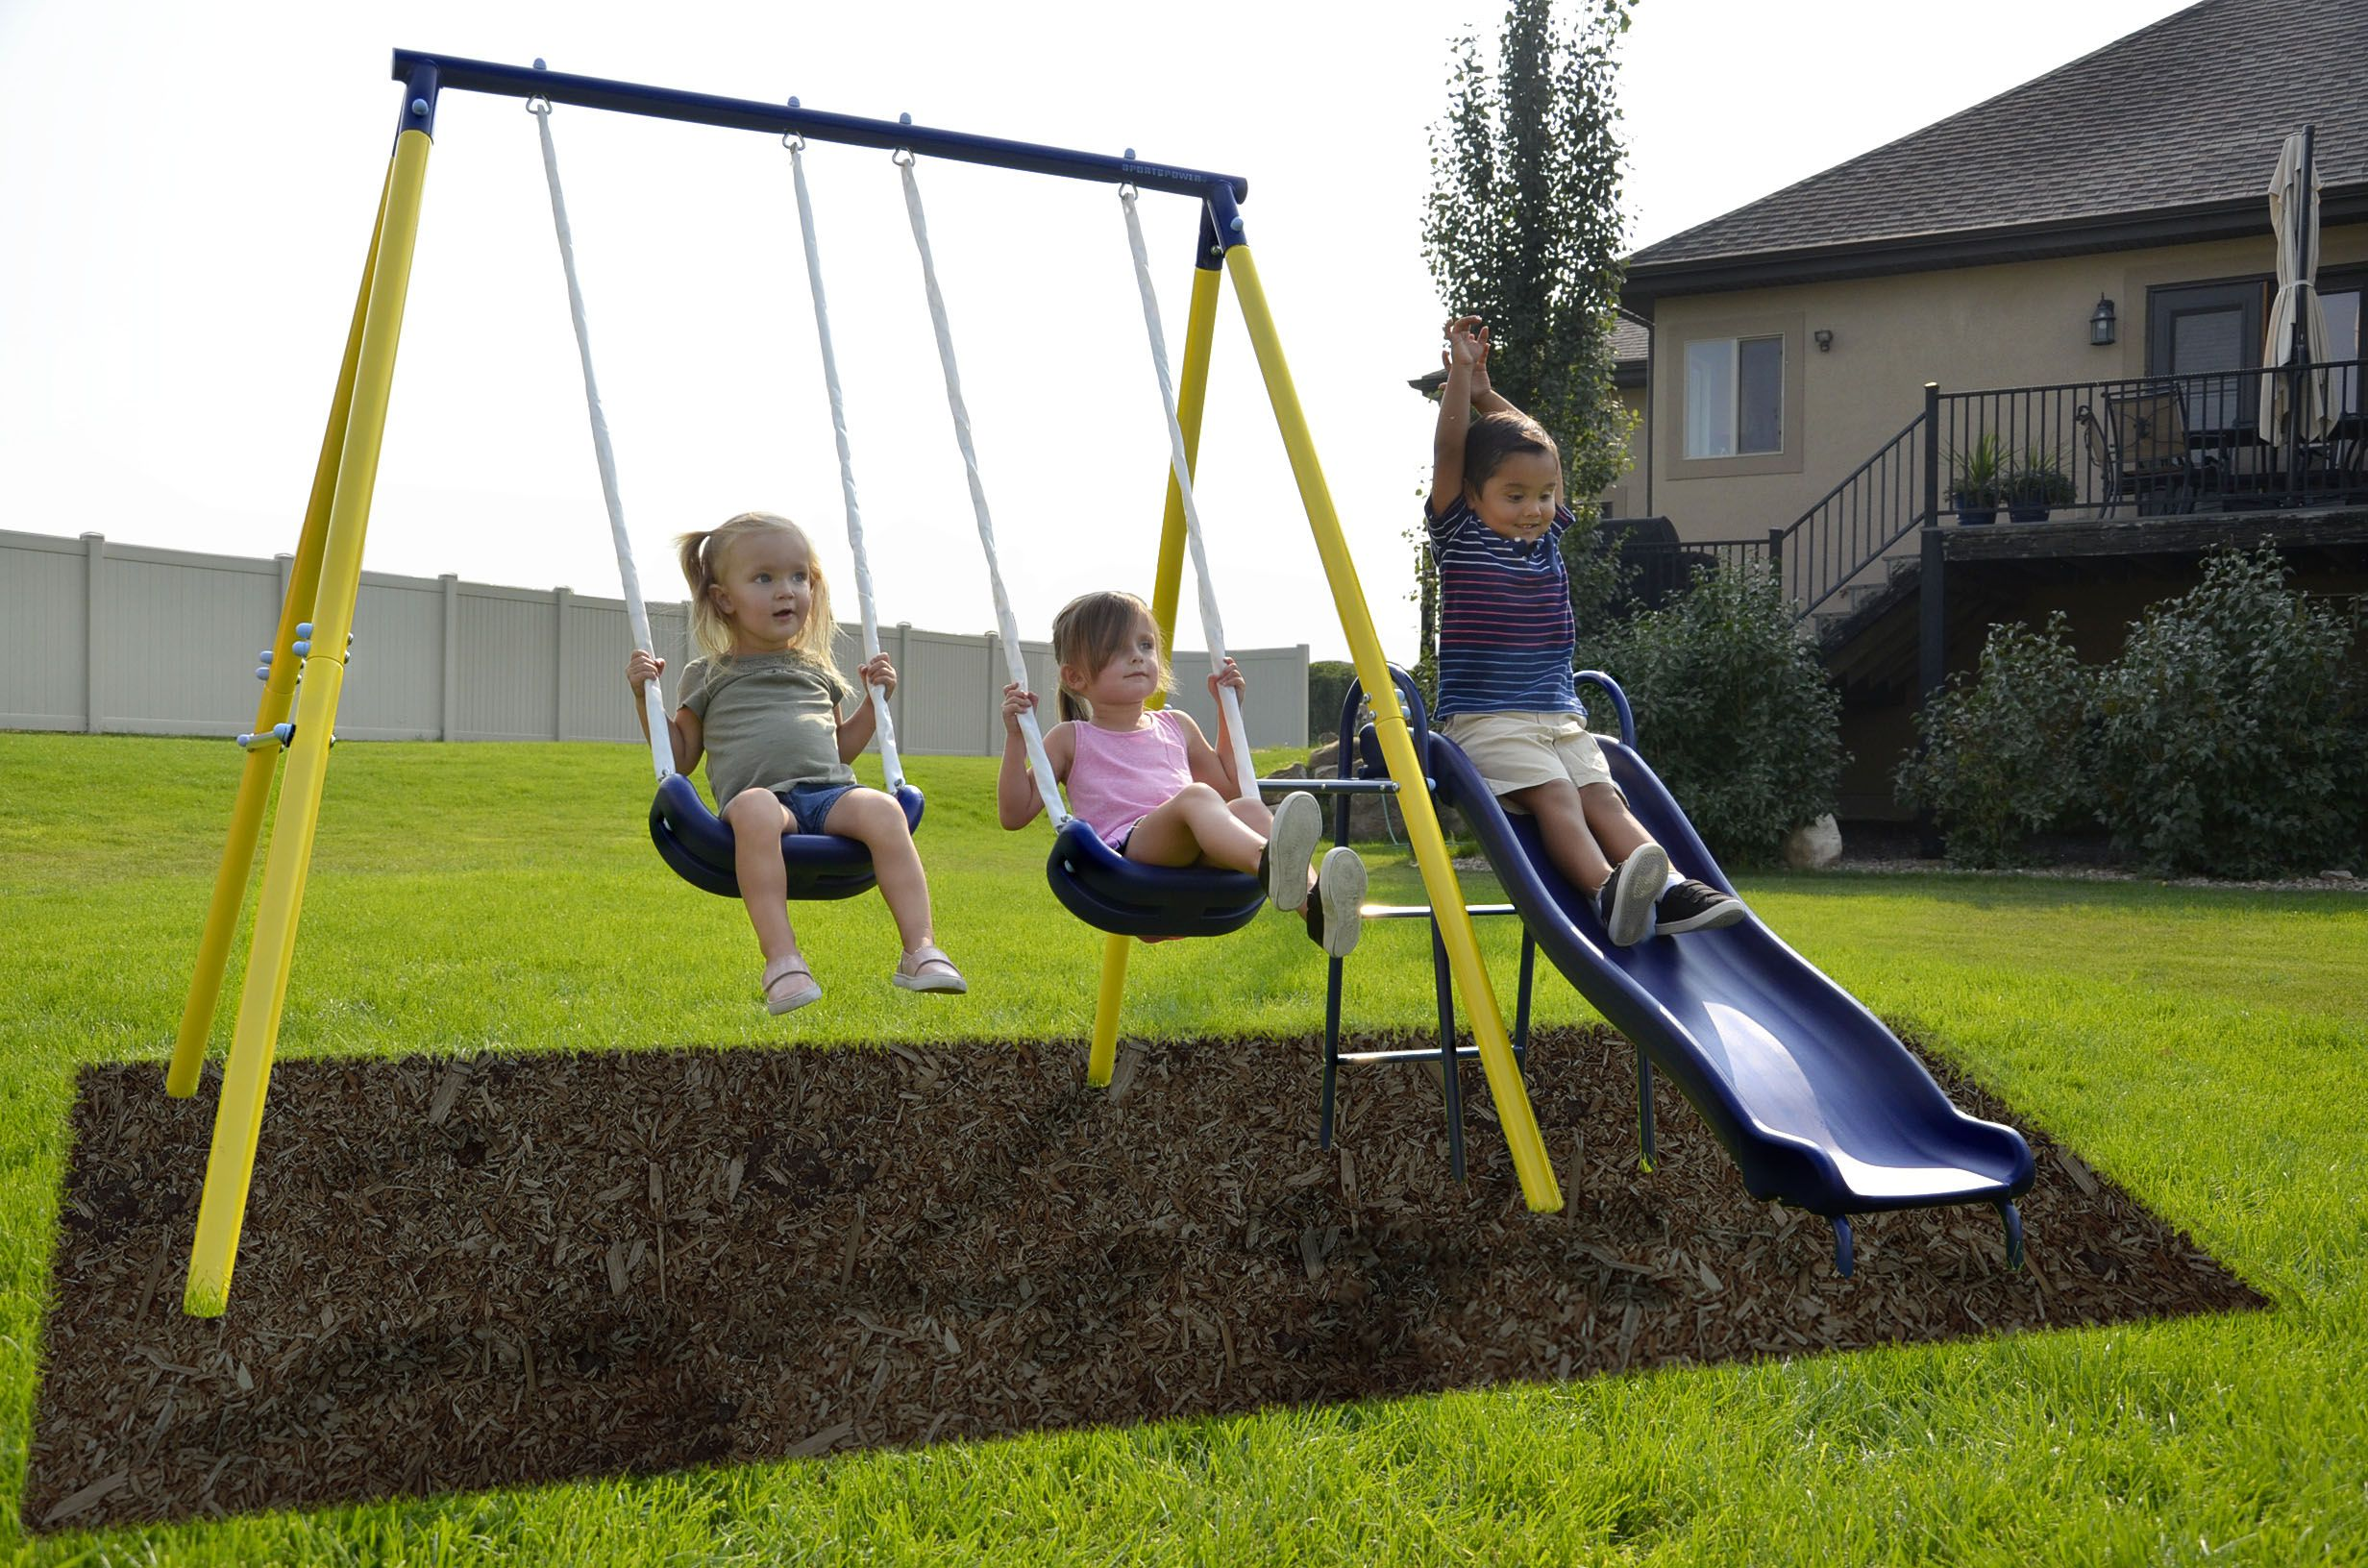 The 8 Best Swing Sets to Buy in 2019